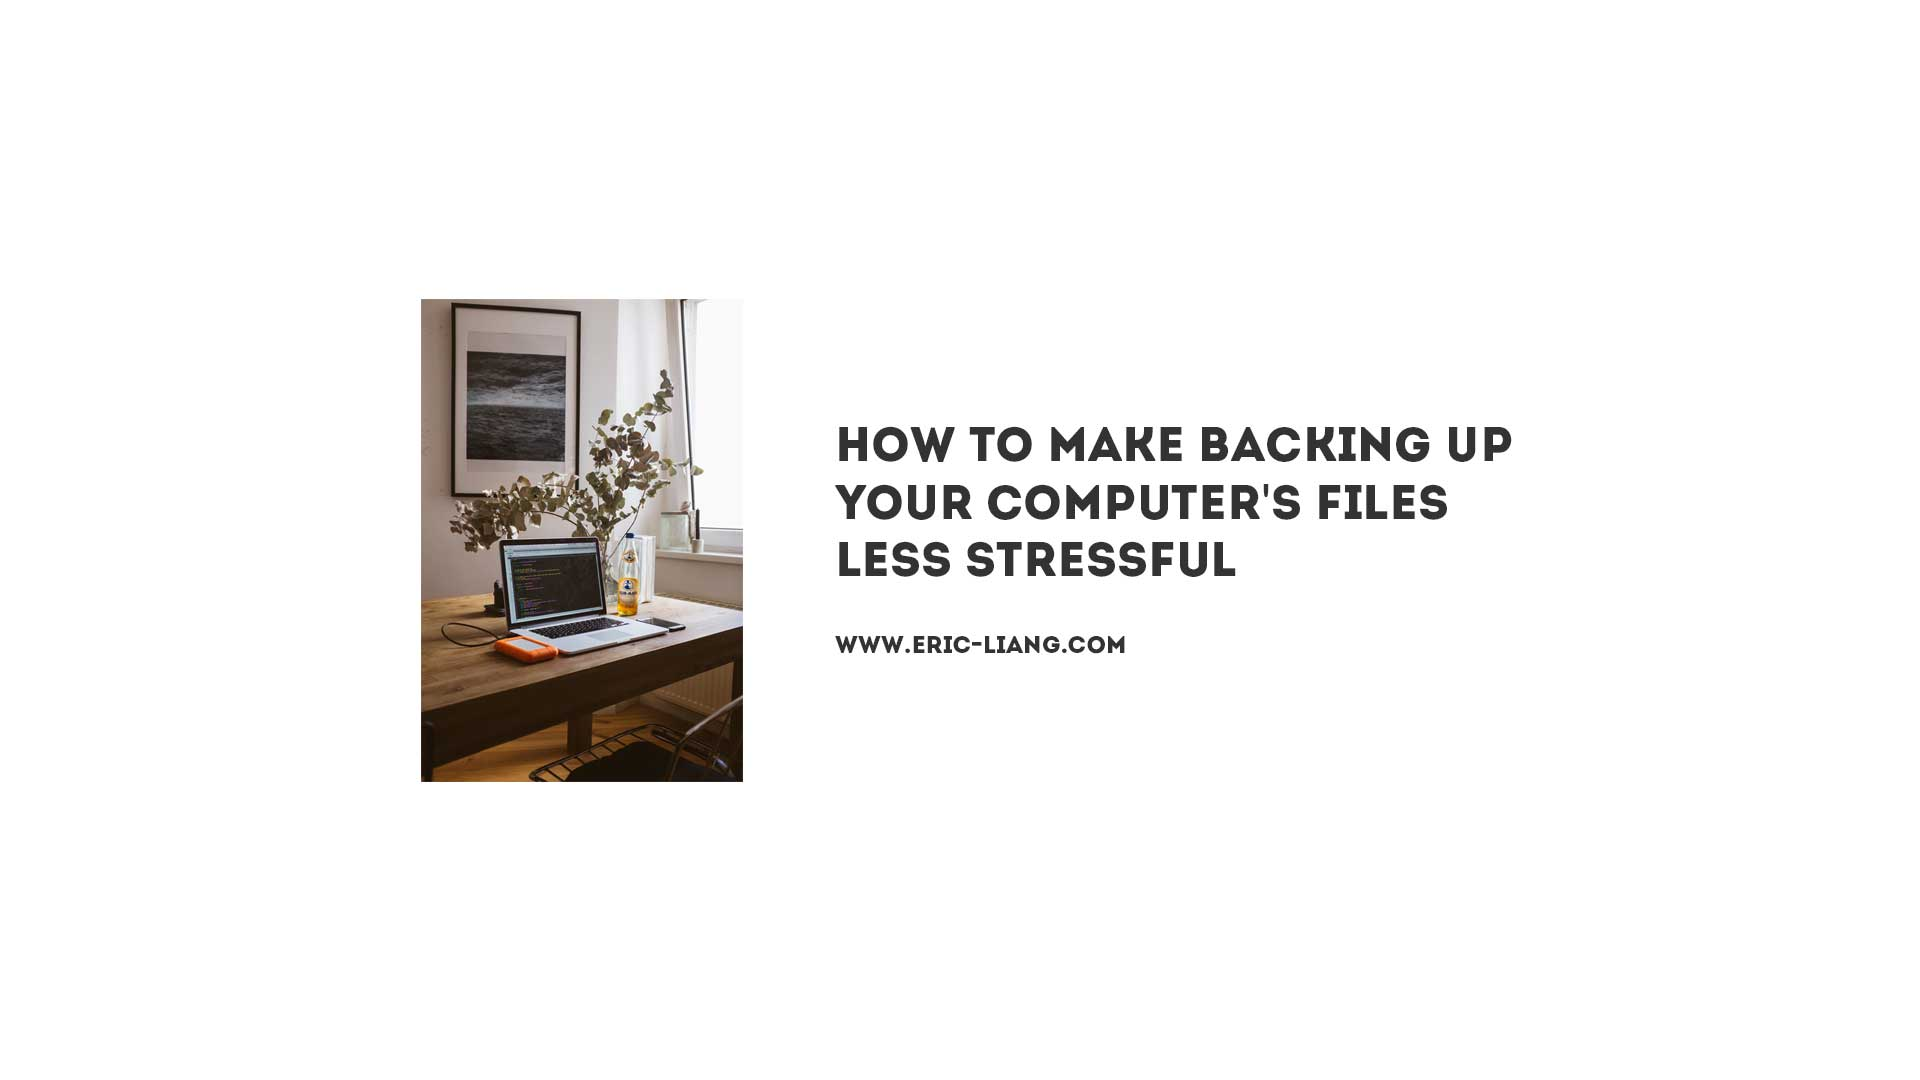 How To Make Backing Up Your Computer's Files Less Stressful